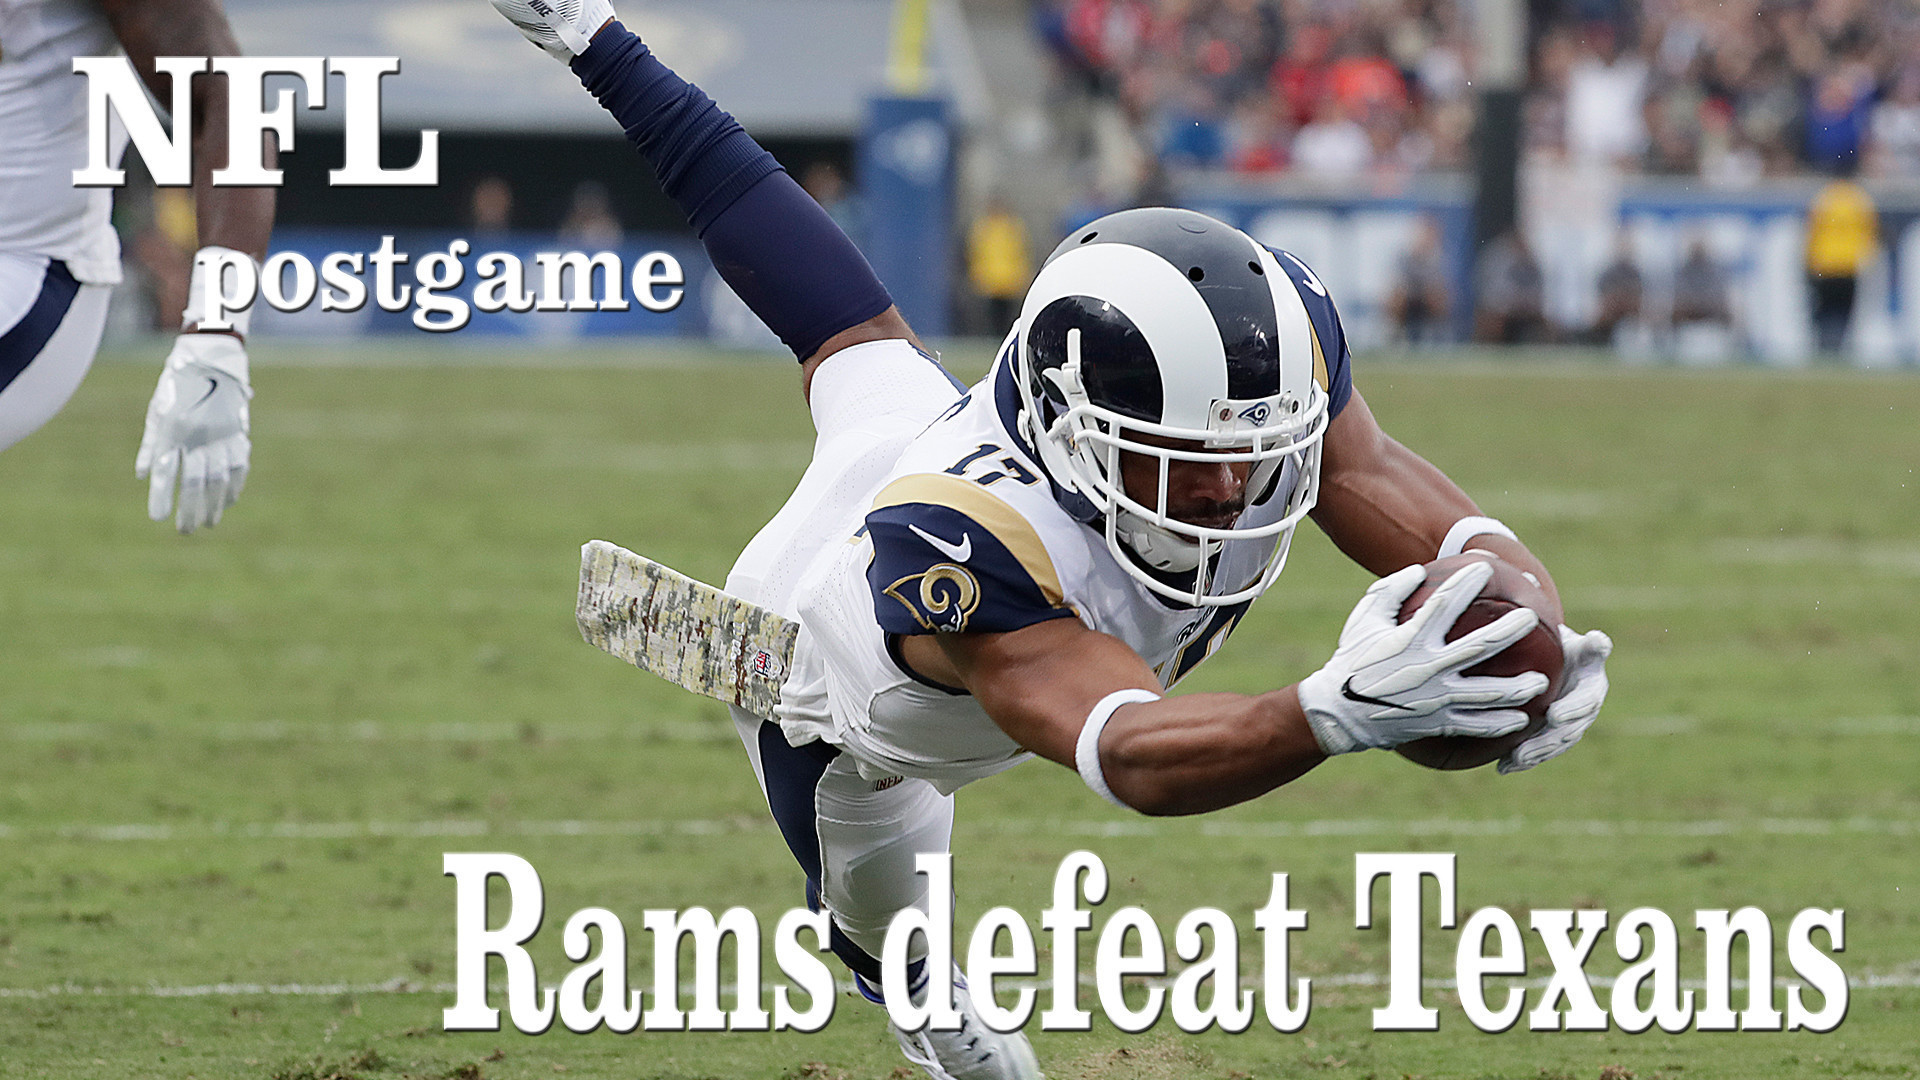 Breaking down the Rams' 33-7 victory over the Houston Texans